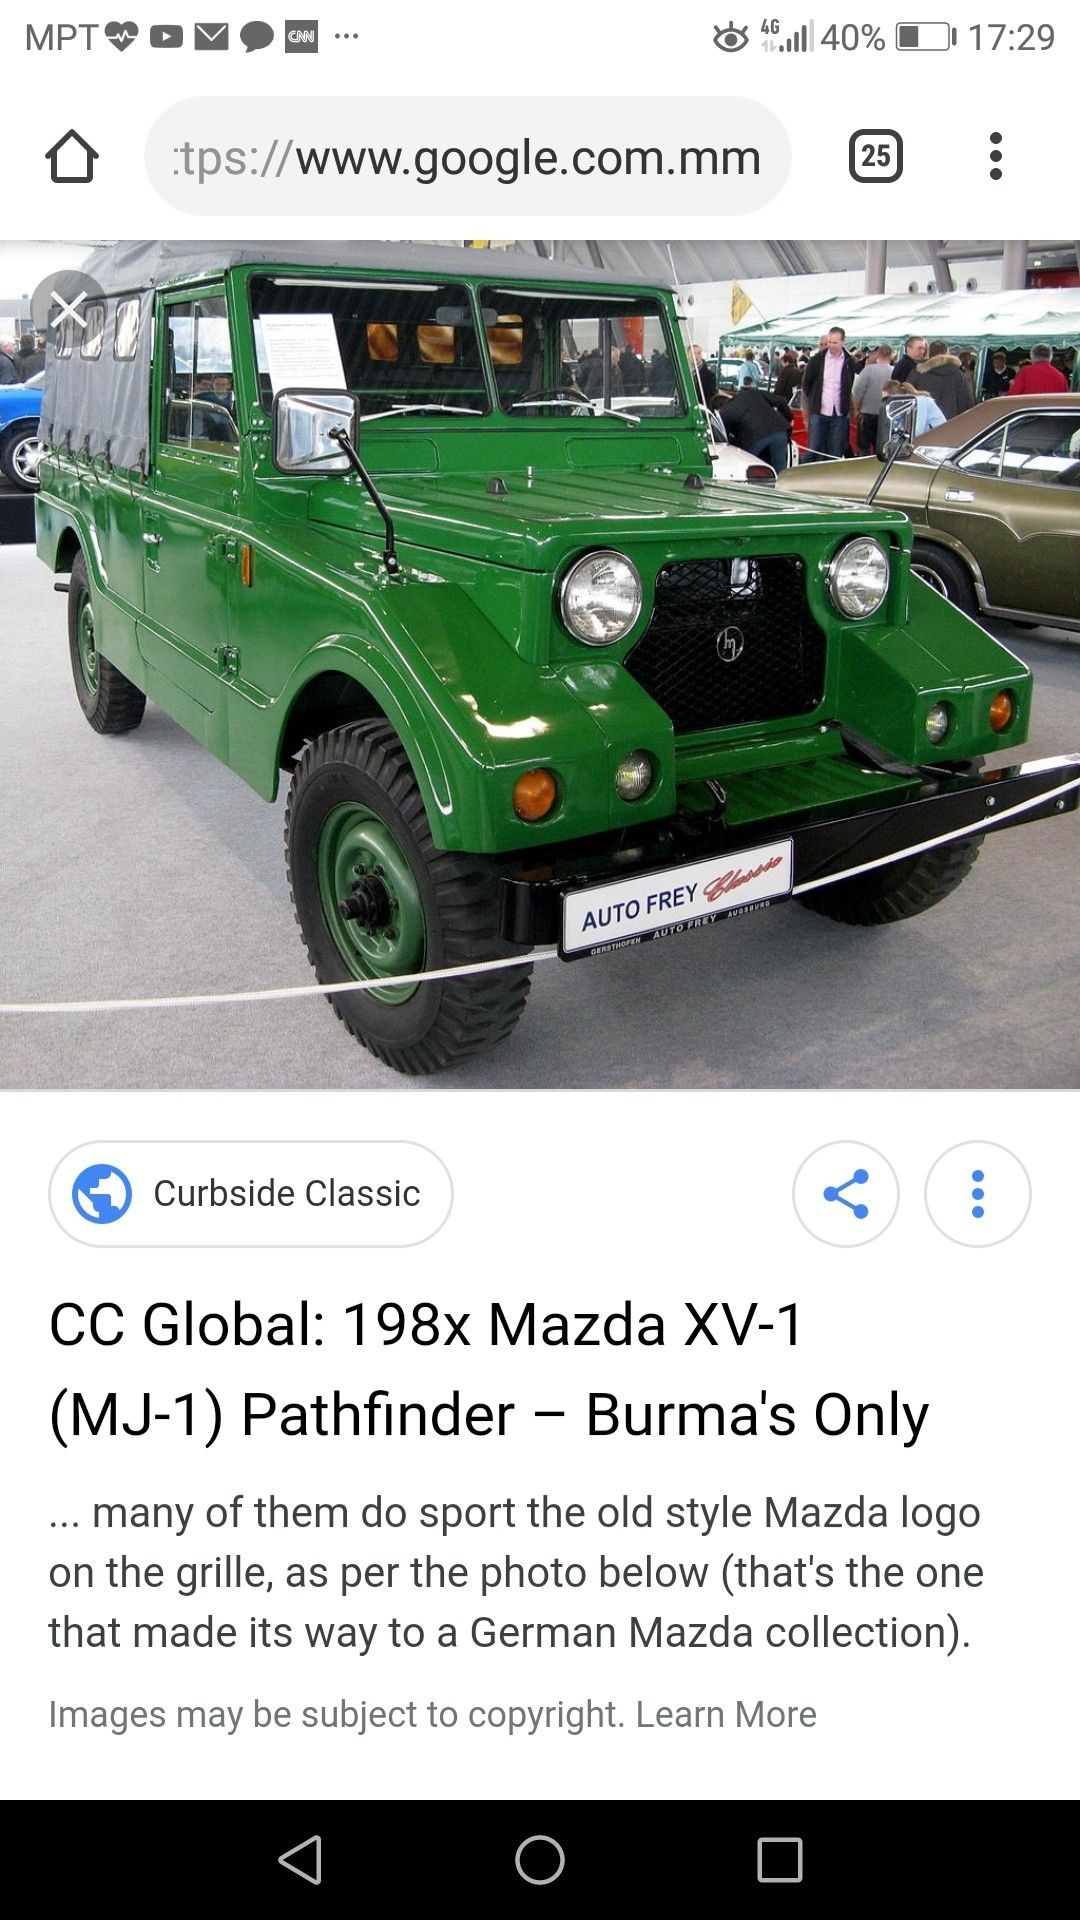 Pin By Winkhaing On Myanmar Cars How To Memorize Things Mazda